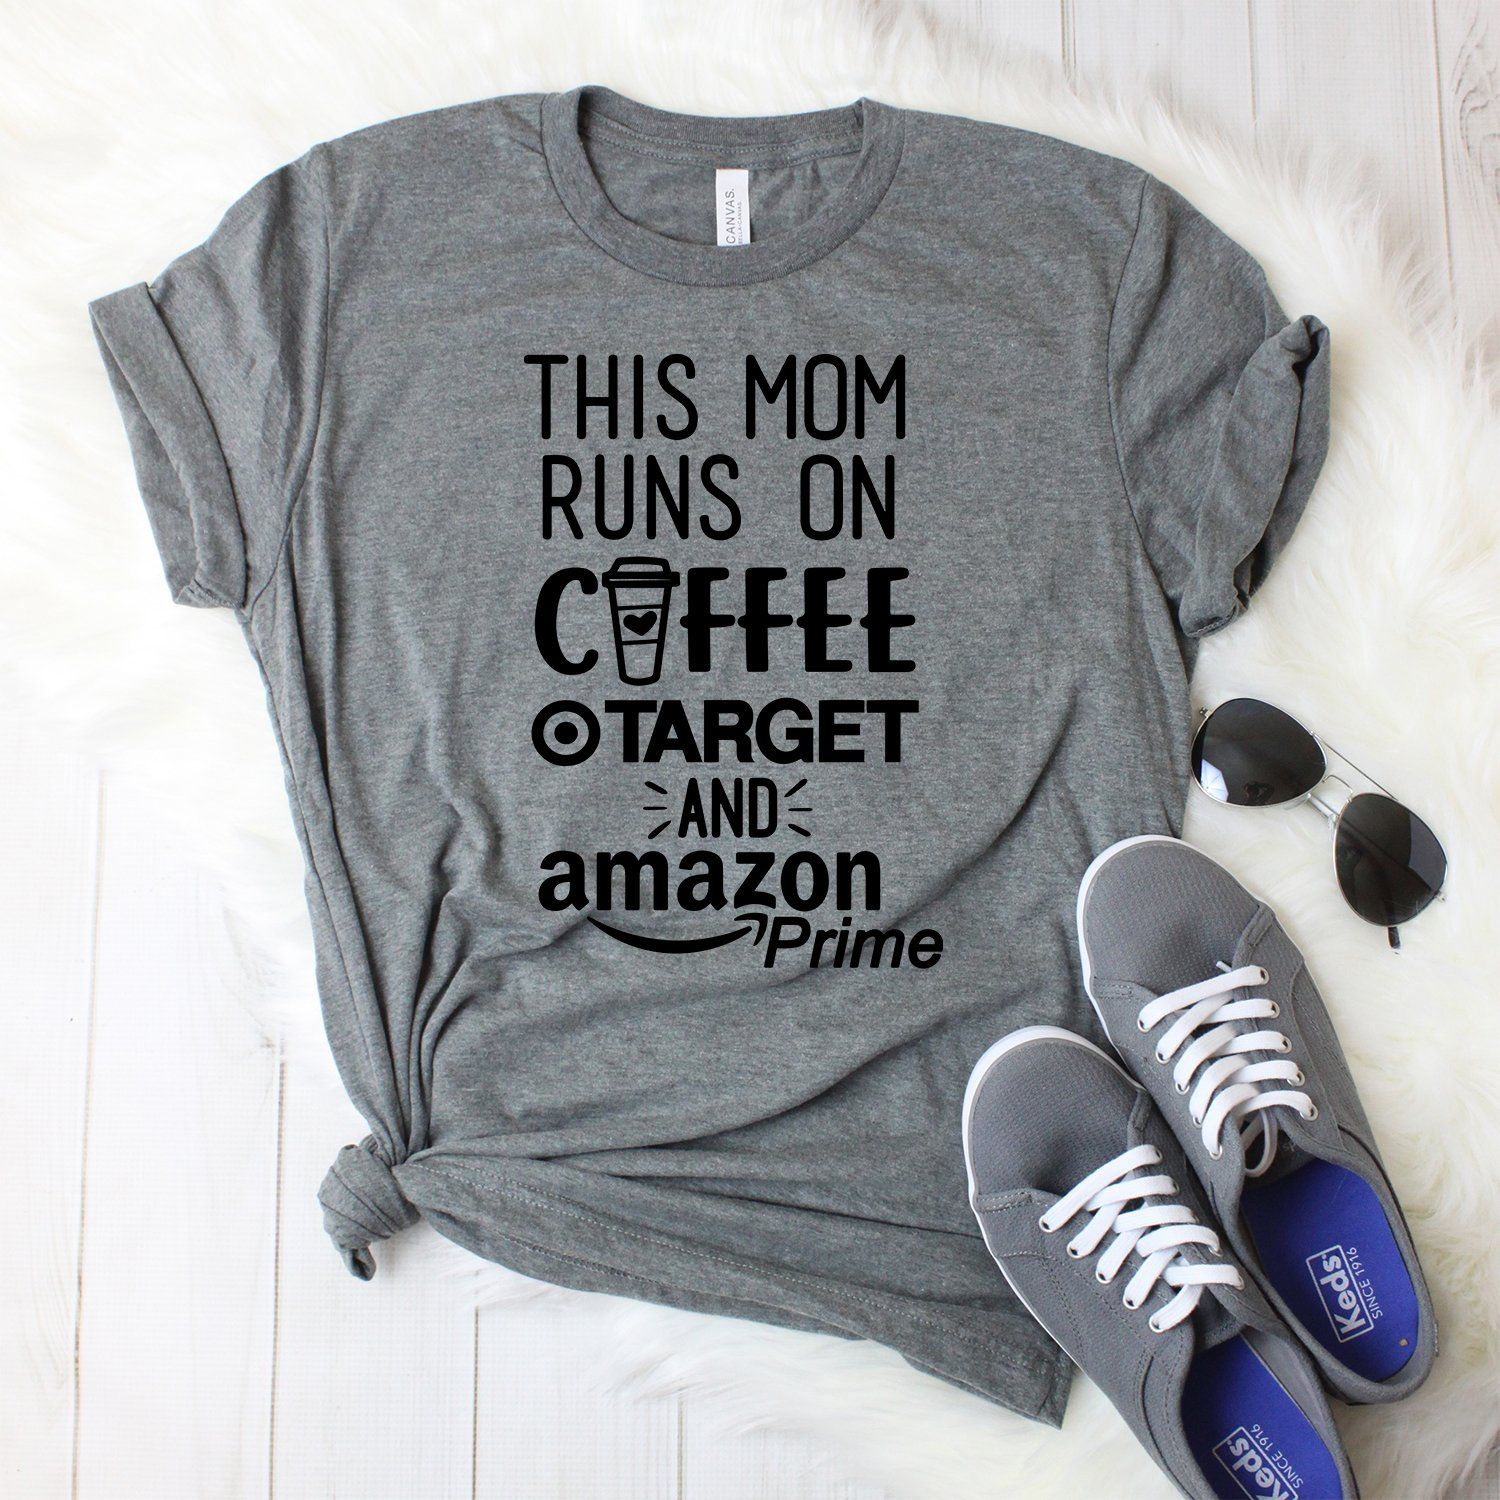 9bf979258 This Mom Runs on Coffee, Target, and Amazon Prime T-Shirt | Love ...